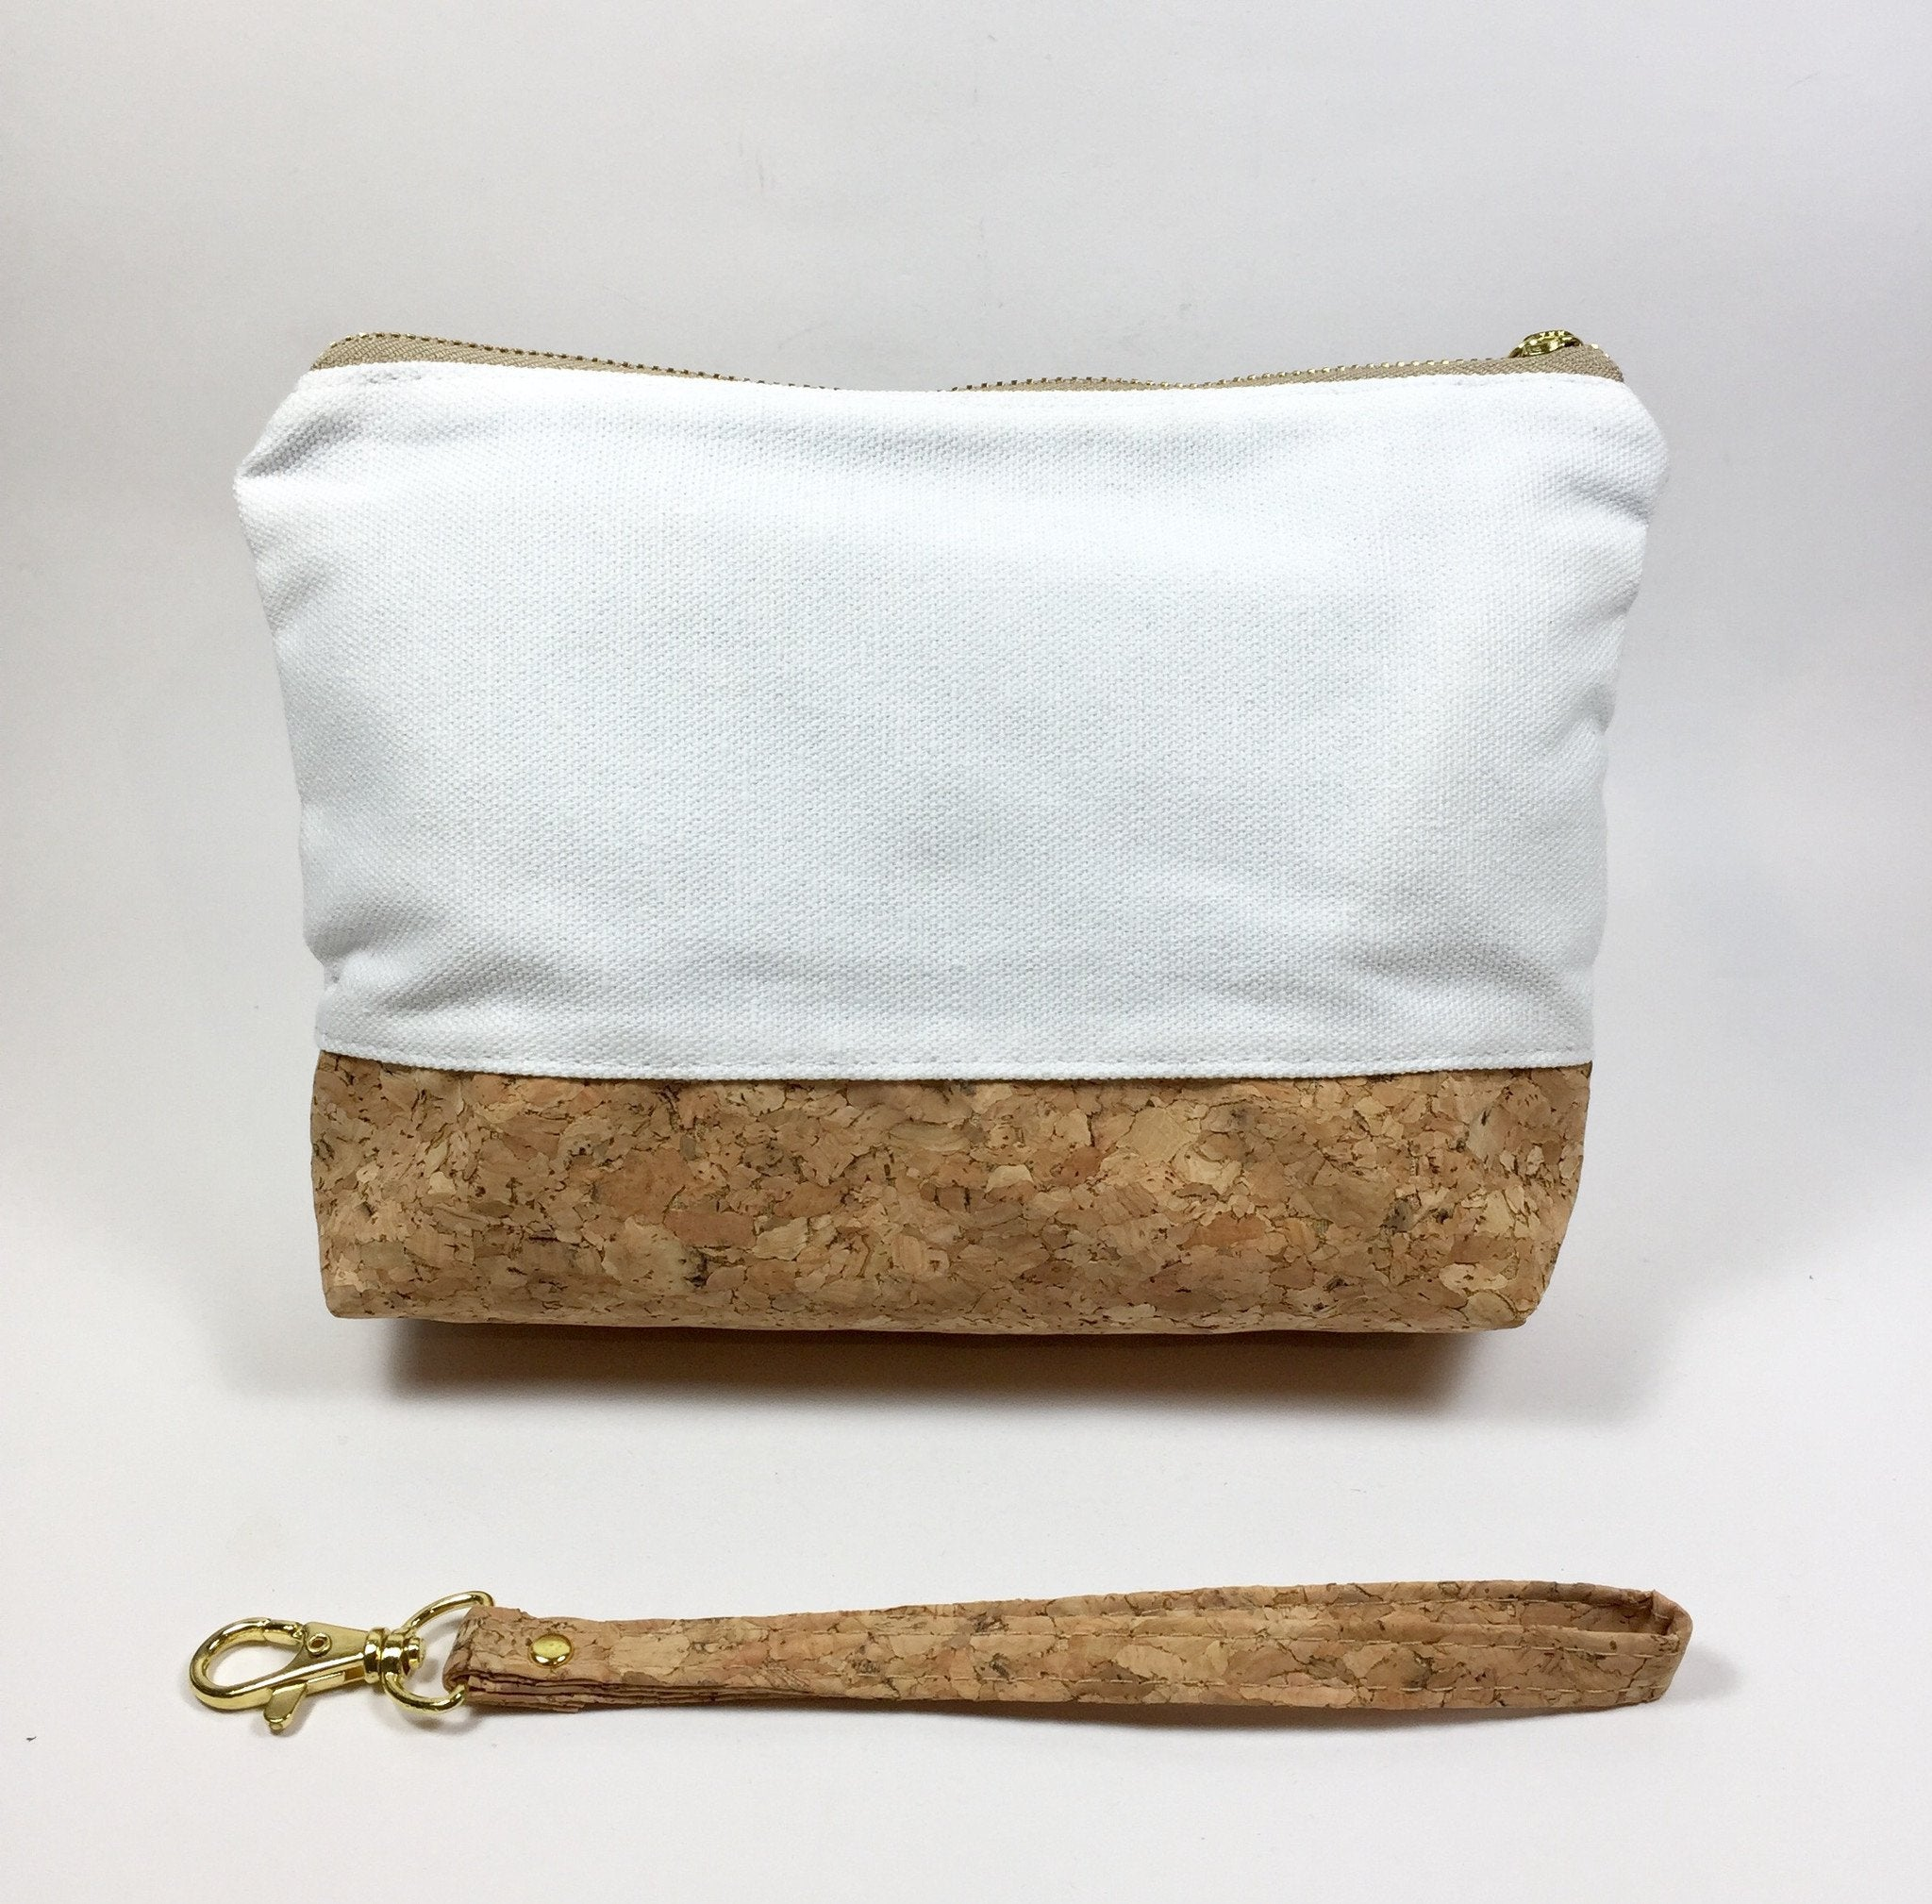 Plain Classic Miley Cork and Canvas Makeup Clutch Bag Natural Cruelty Free Ethical Vegan Recycled